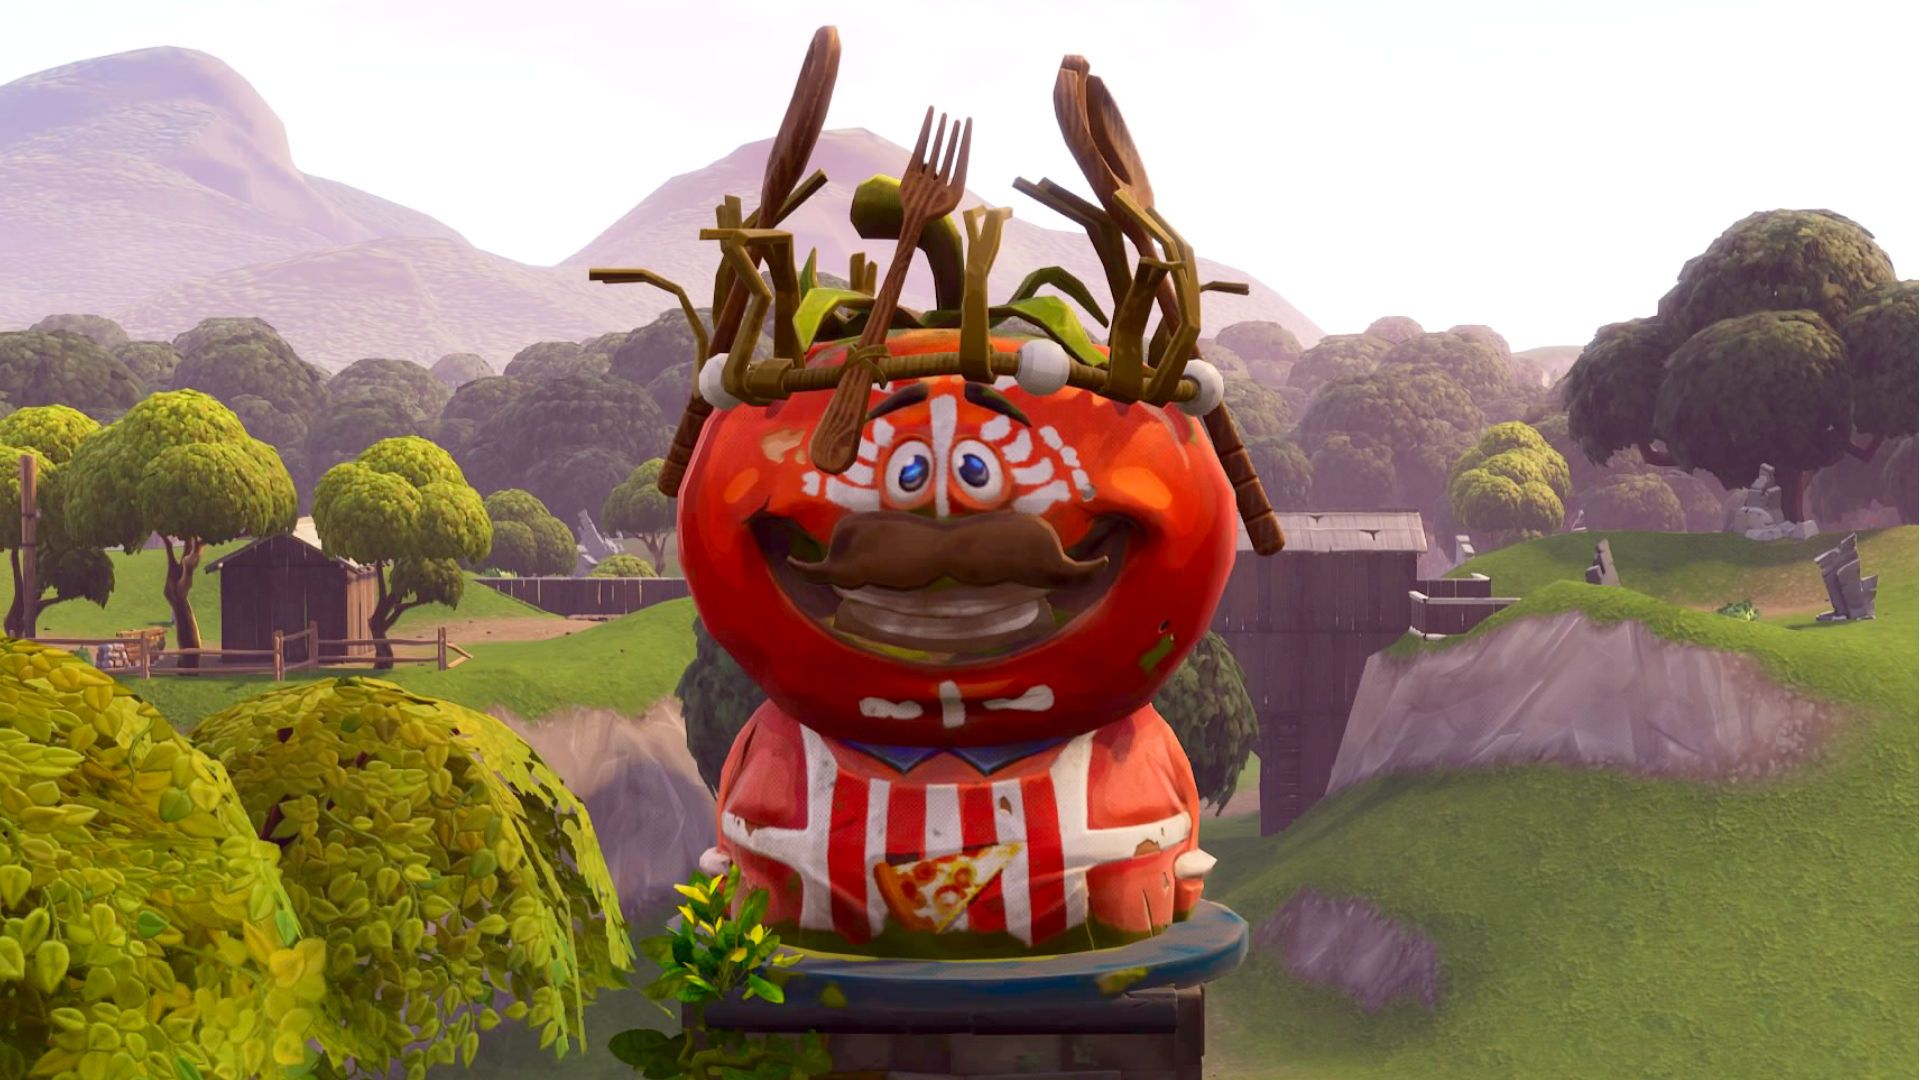 Fortnite map changes: what's new in season 5 from new locations, POI